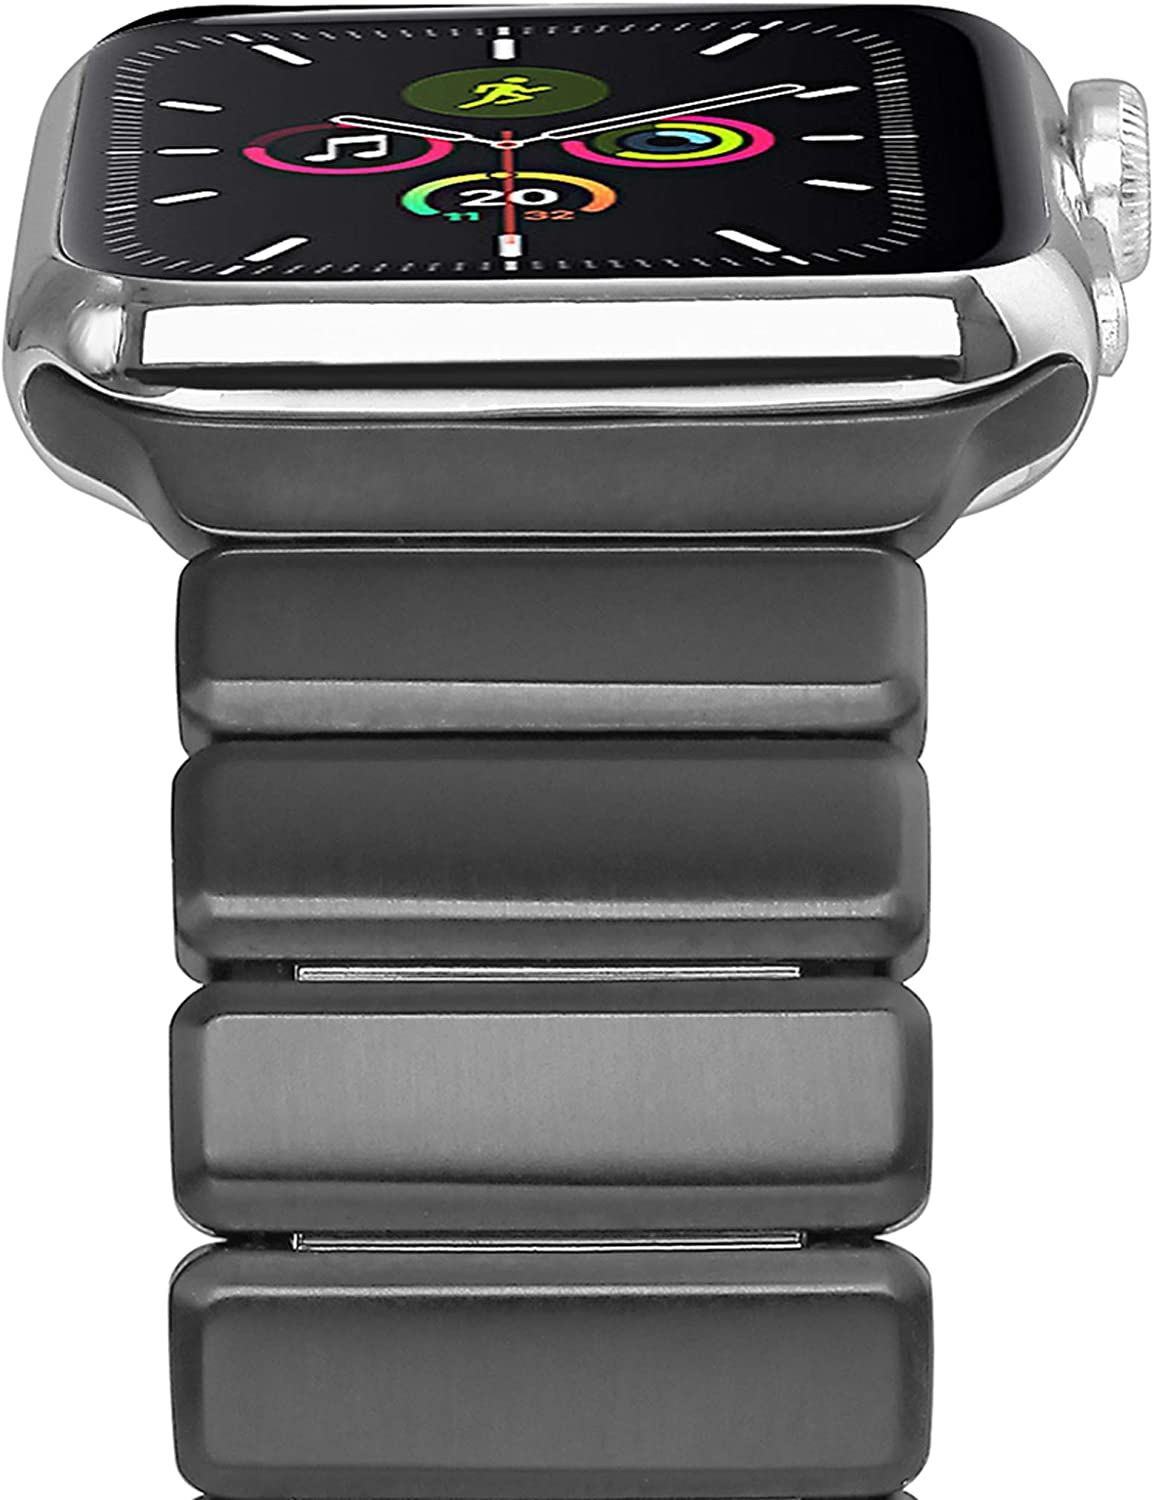 Cogift Watch Band for Apple Watch Series6, 44mm/42mm Stainless Steel Replacement Strap Link Bracelet Metal iWatch Band with Double Button Folding Clasp for Apple Watch 6/5/4/3/2/1/SE -Space Gray